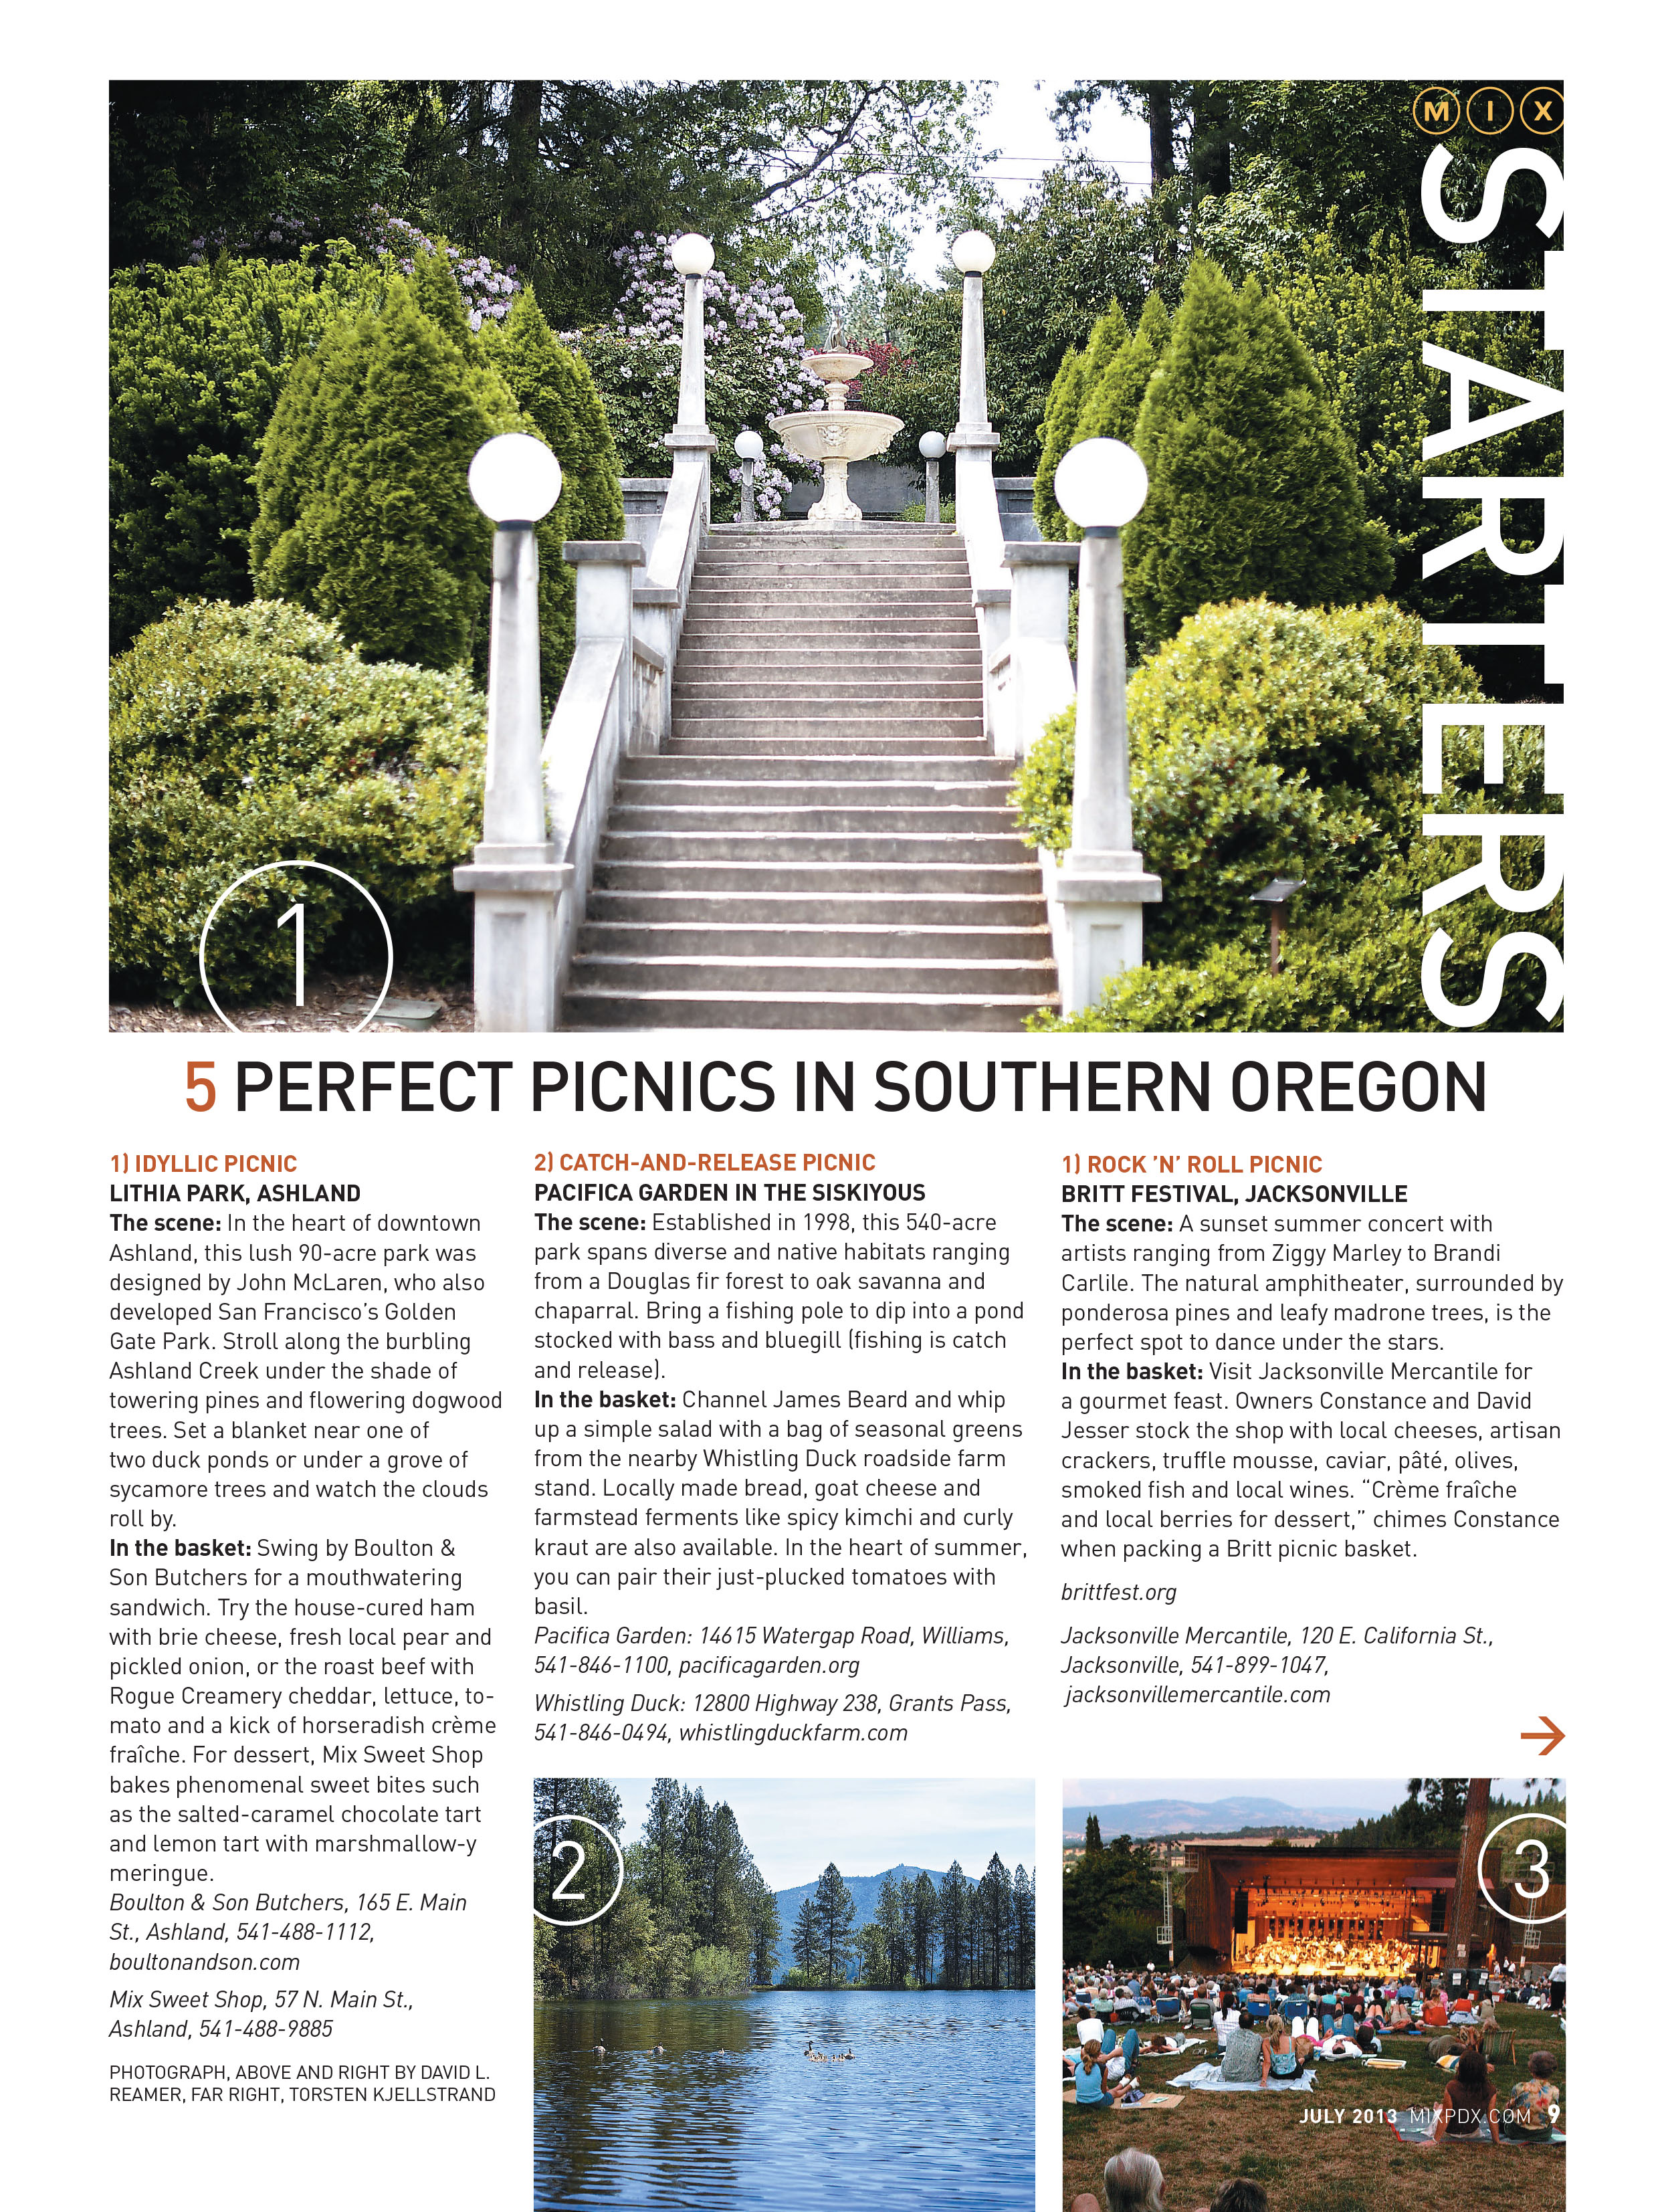 5 Perfect Picnic Places in Southern Oregon